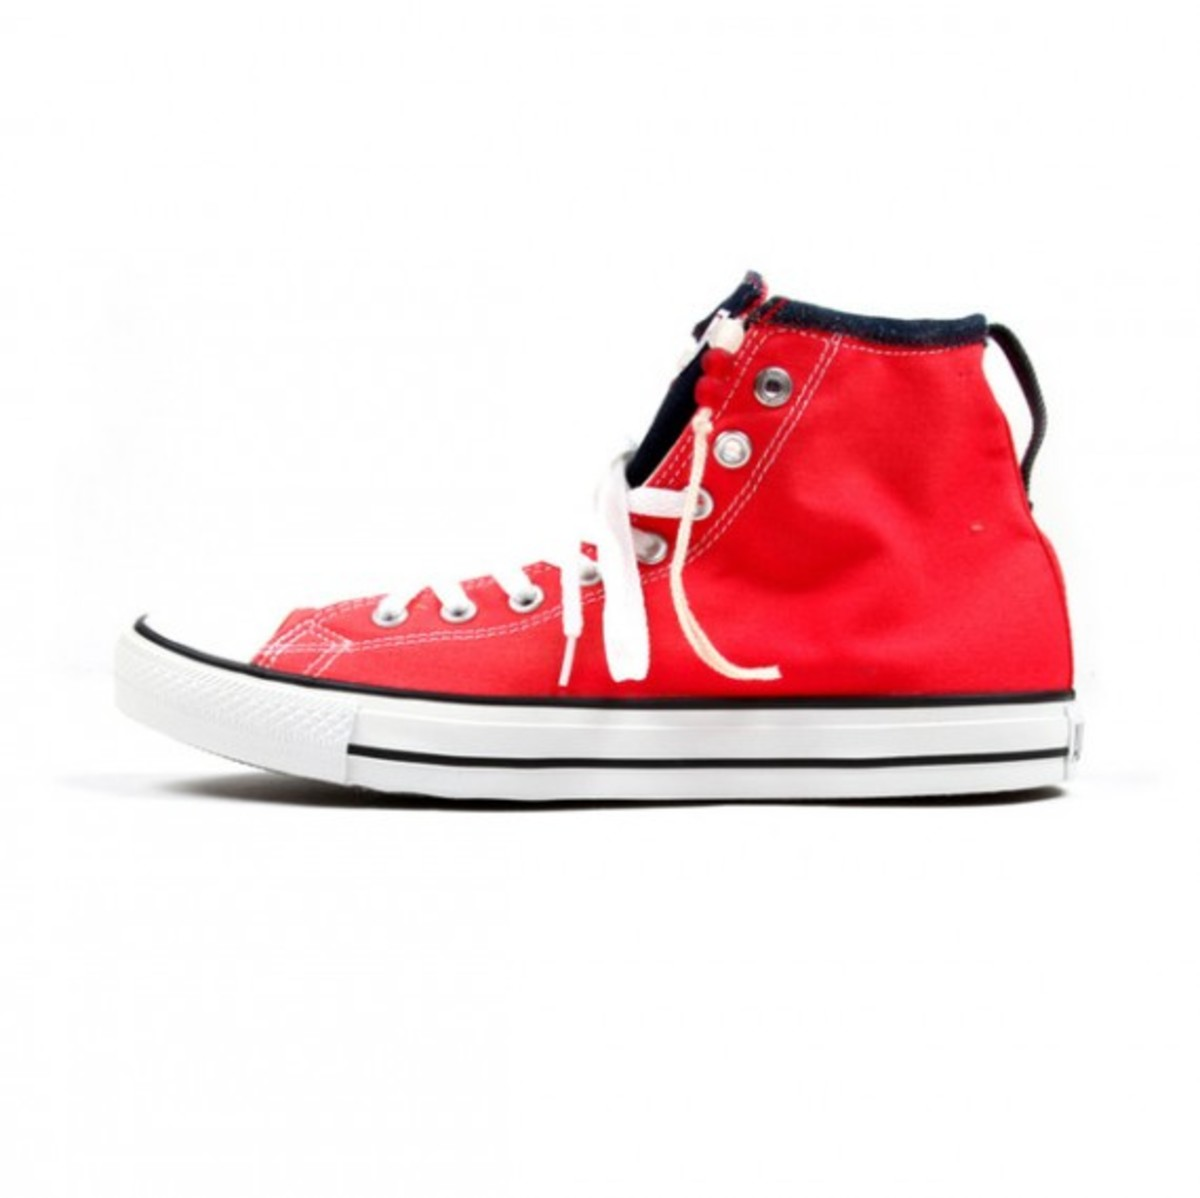 us-alteration-union-custom-made-converse-ct-sneakers-02